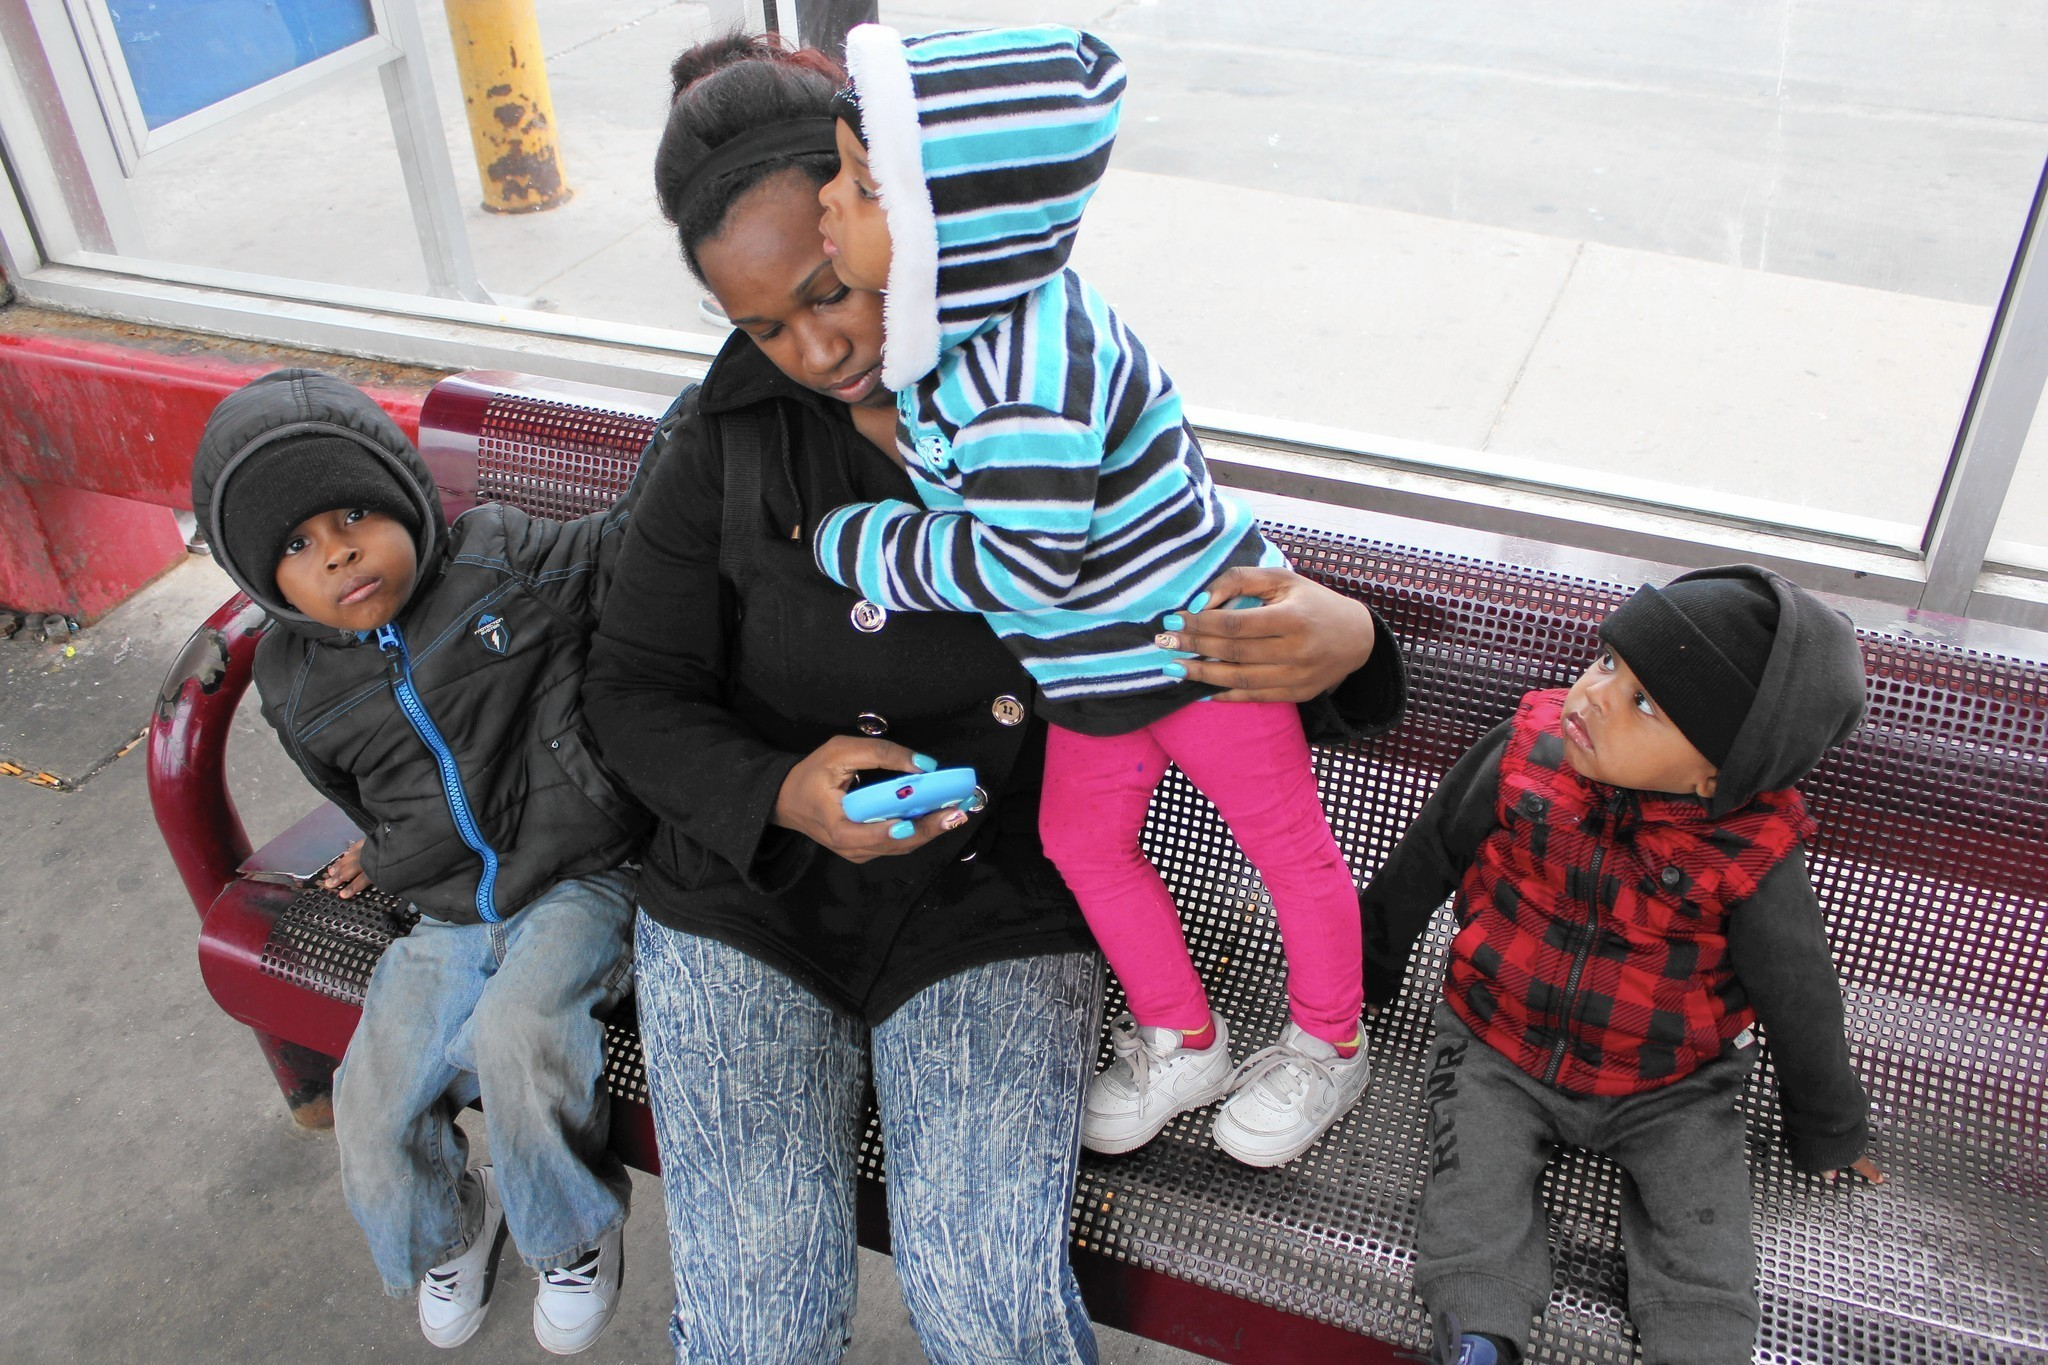 pace bus schedule frustrates riders - daily southtown